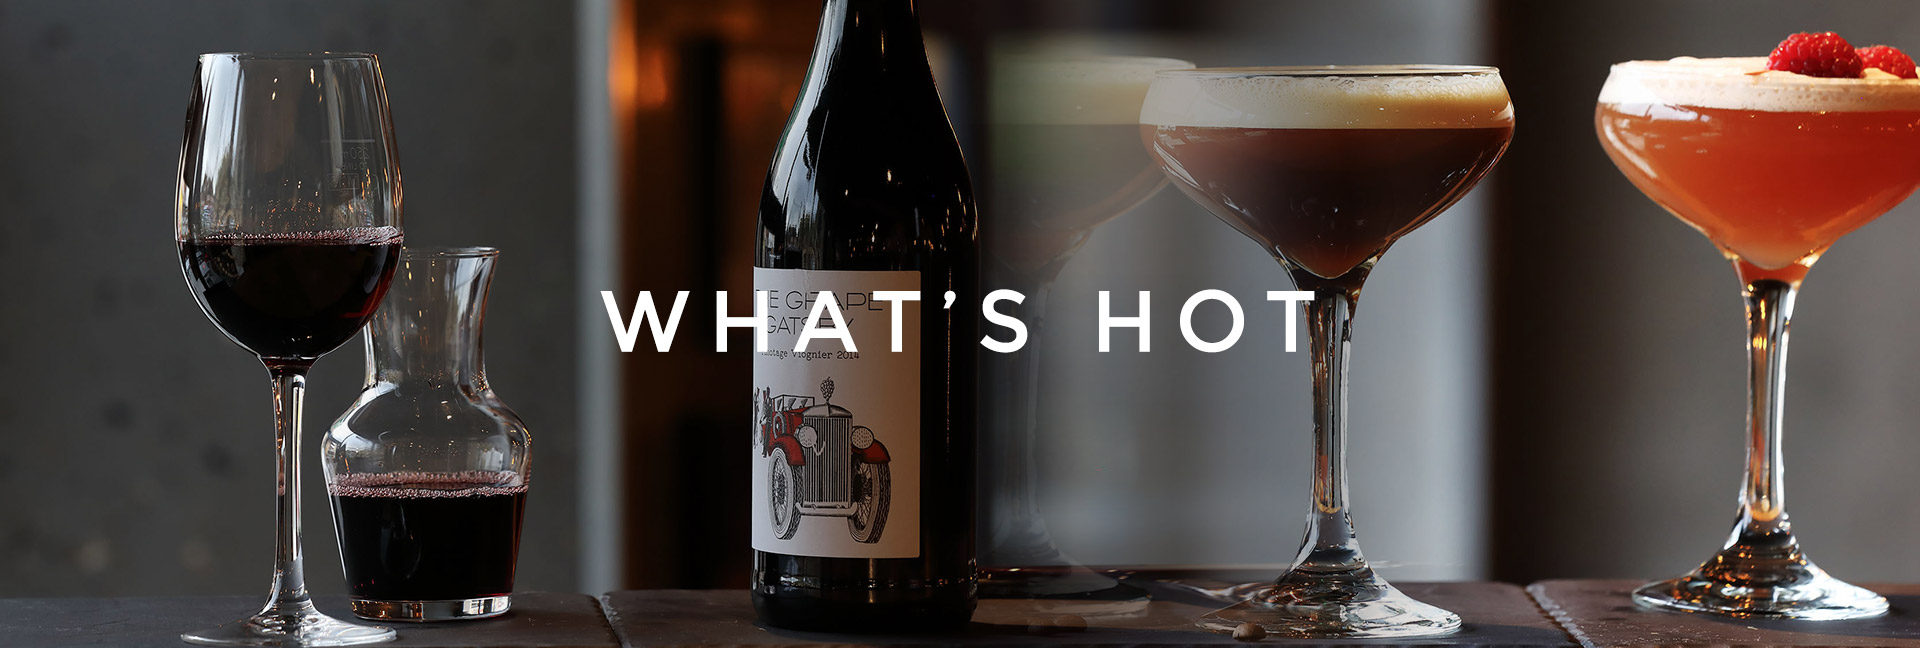 What's Hot at All Bar One Waterloo